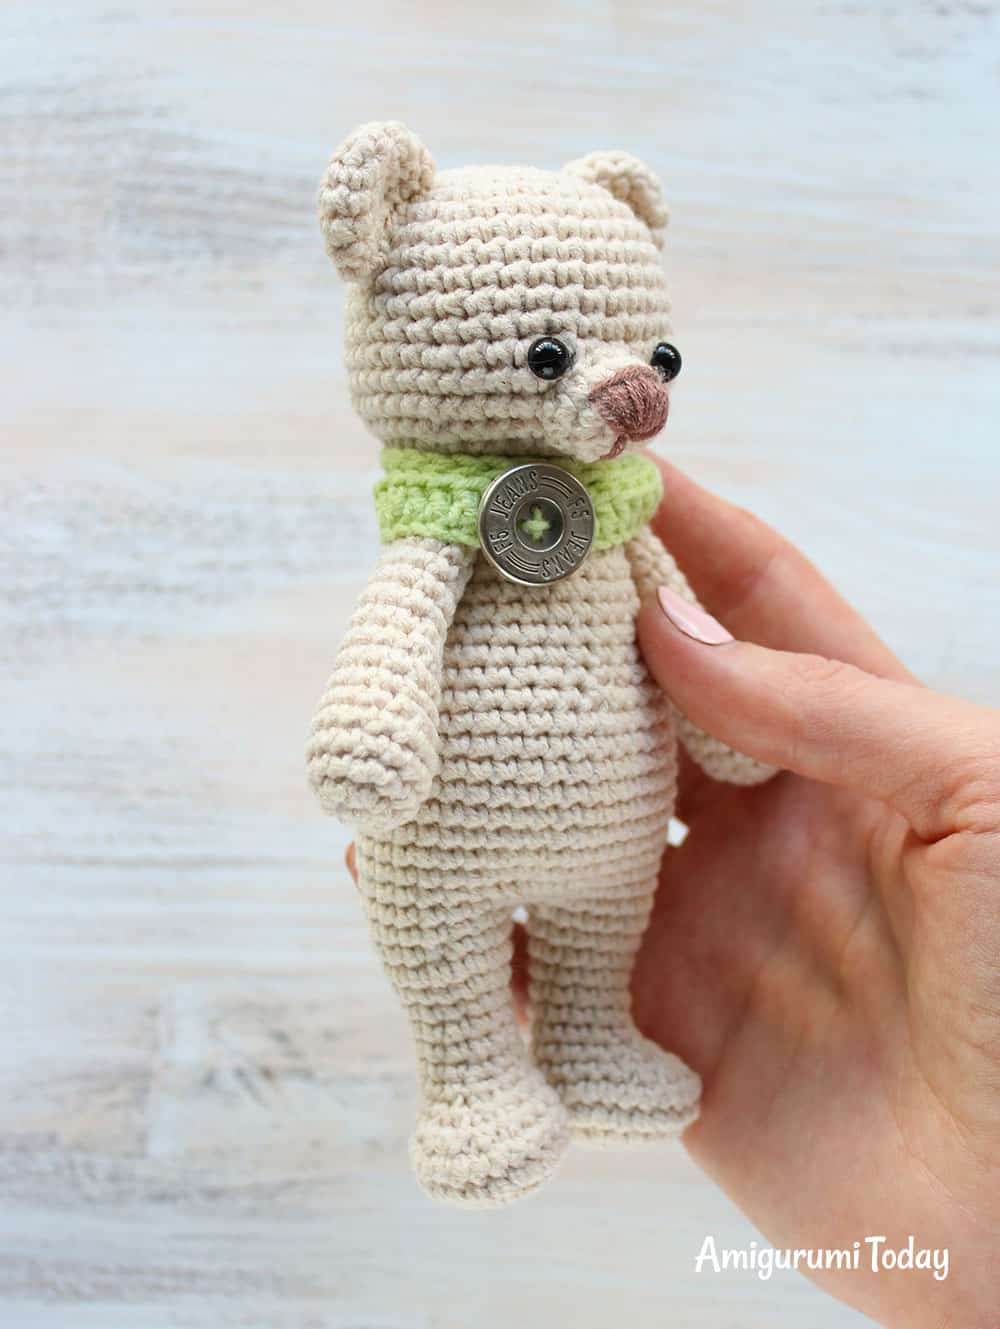 Cuddle Me Bear amigurumi pattern - Amigurumi Today